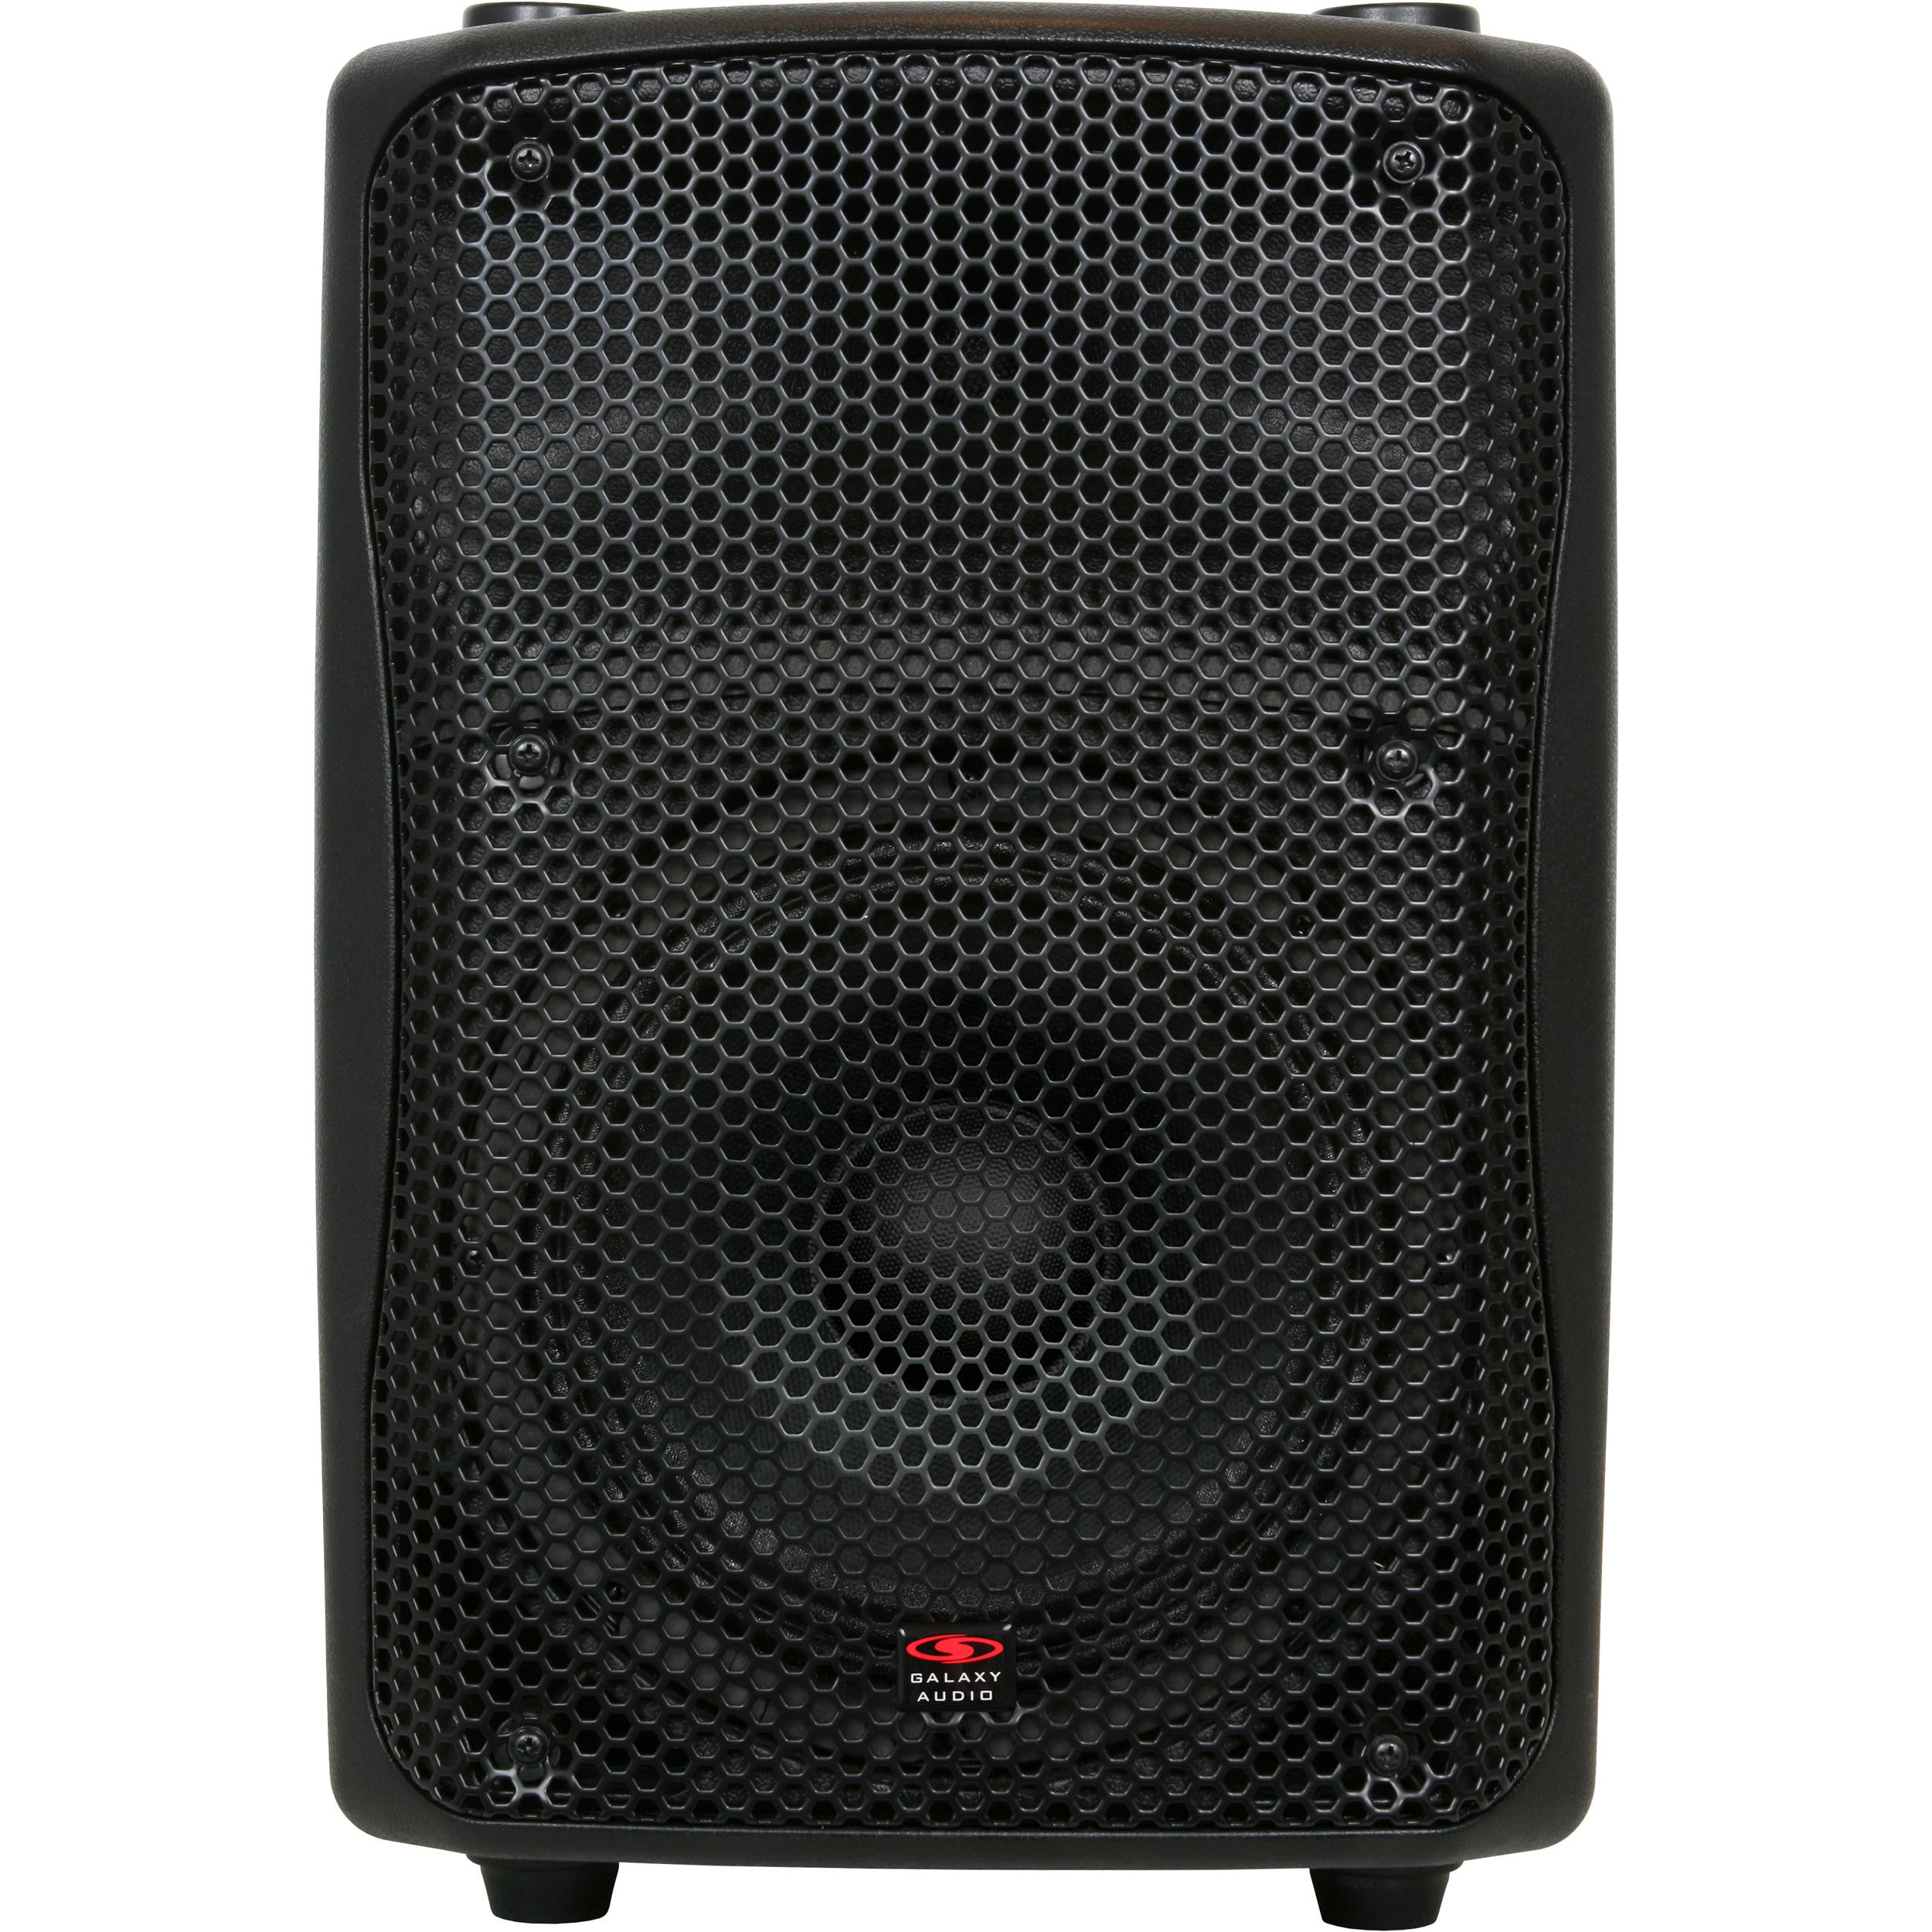 Galaxy Audio Gps 8 2 Way Compact Pa Speaker Bh Photo Xlr Wiring Multiple Speakers